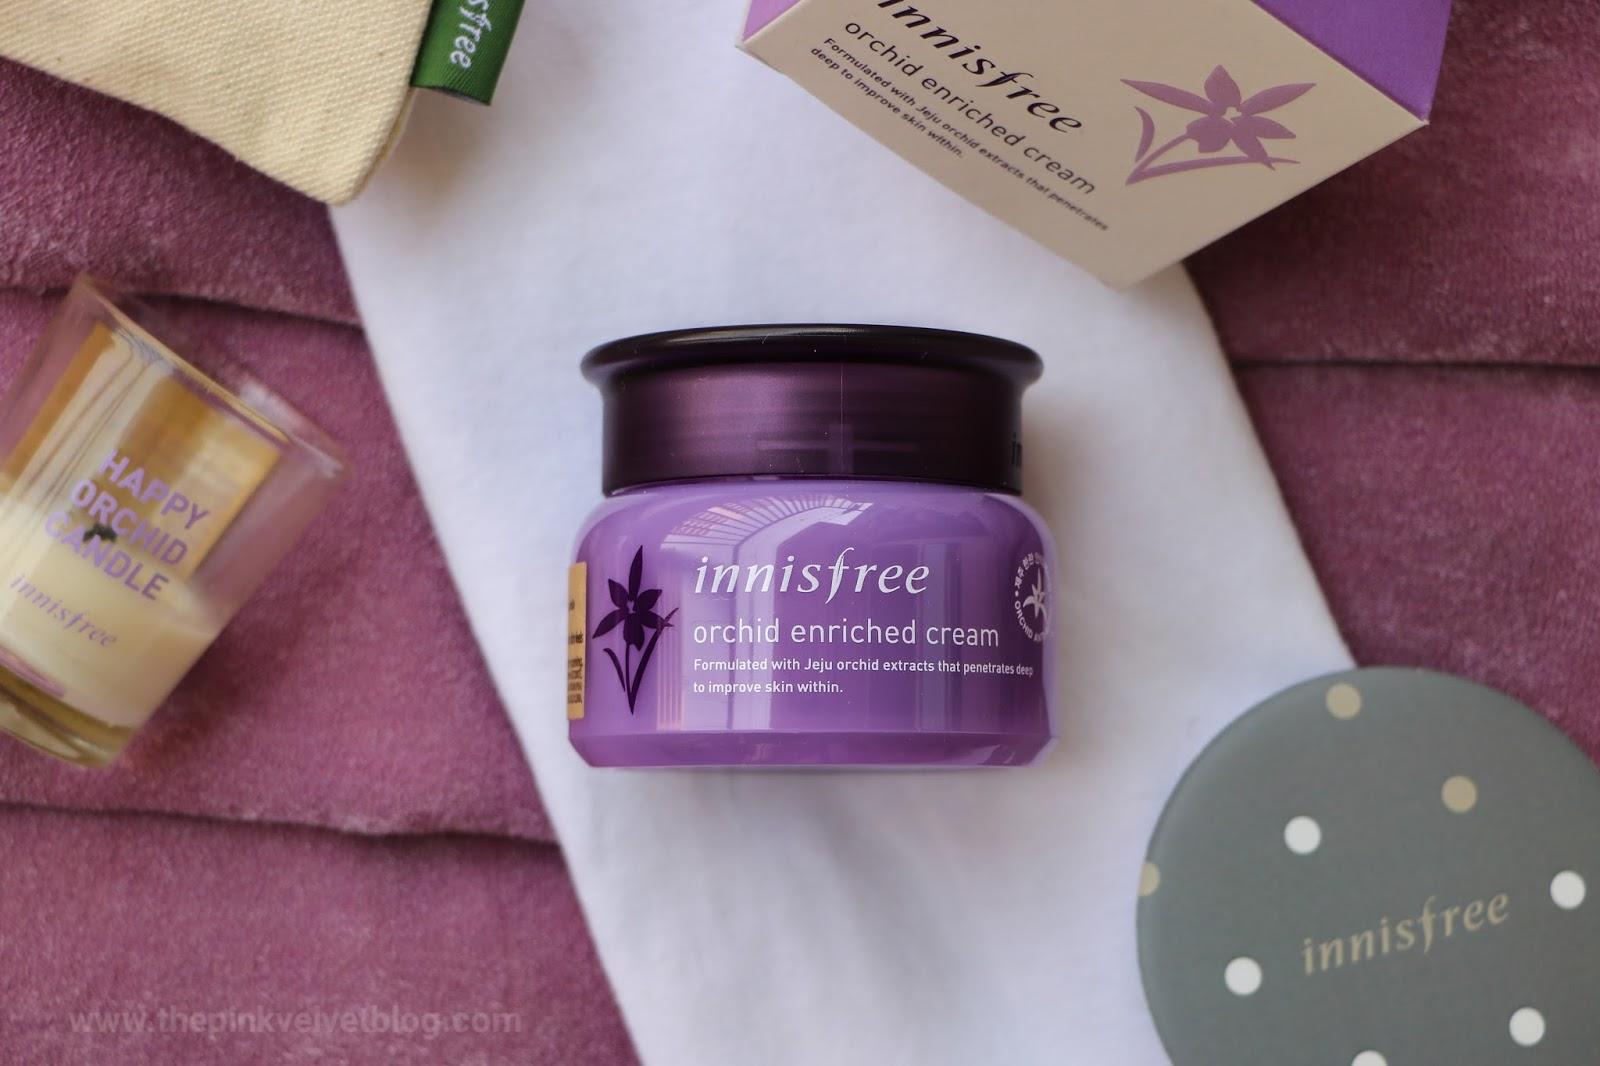 Innisfree Orchid Enriched Cream Review - The Pink Velvet Blog - Niharika Verma